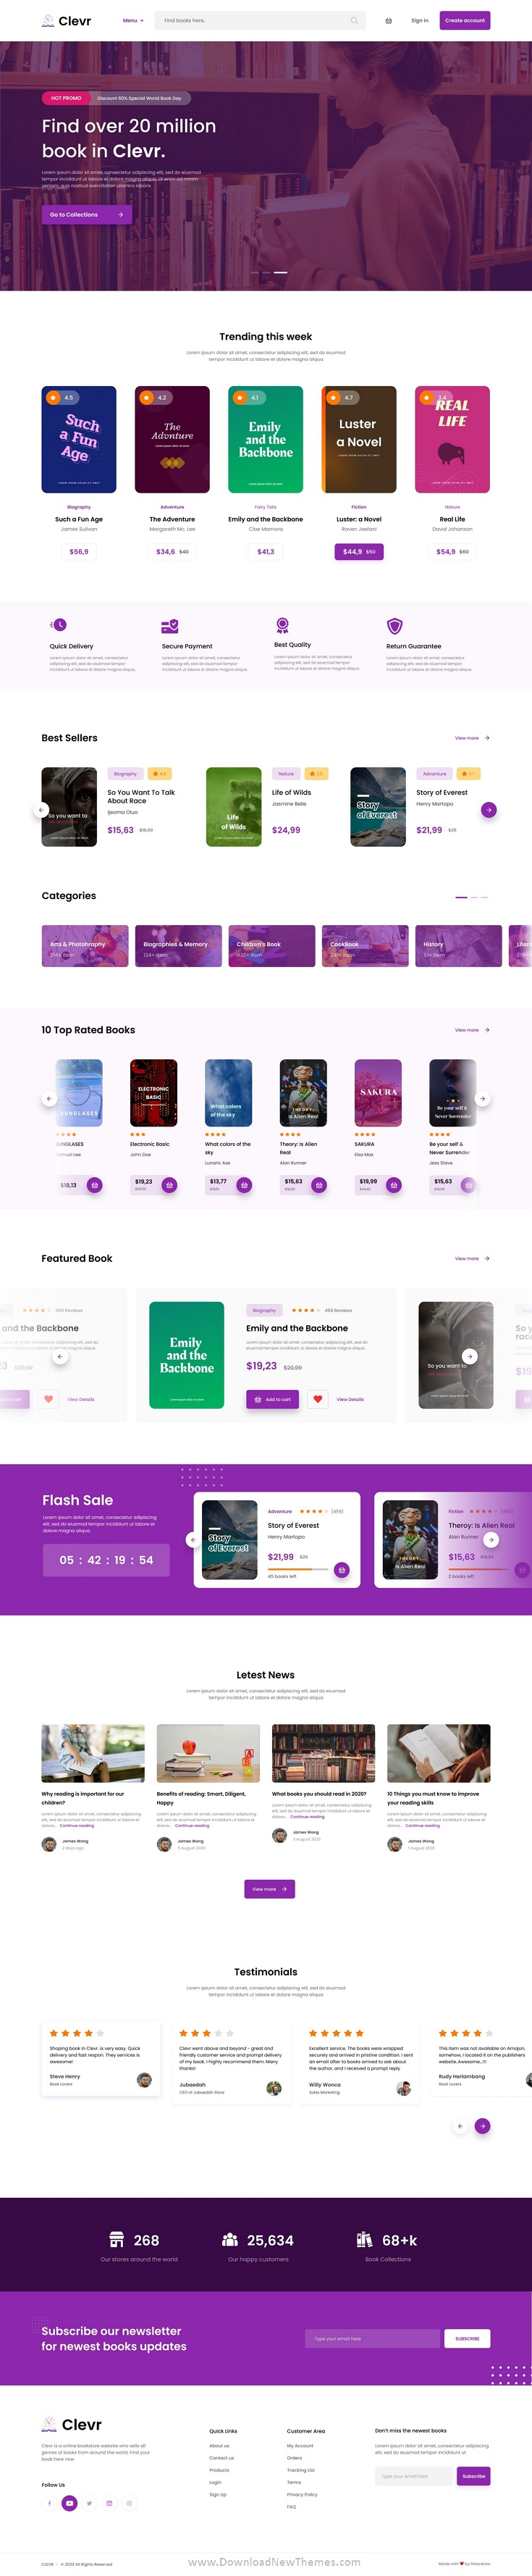 Book Store Ecommerce Website Template